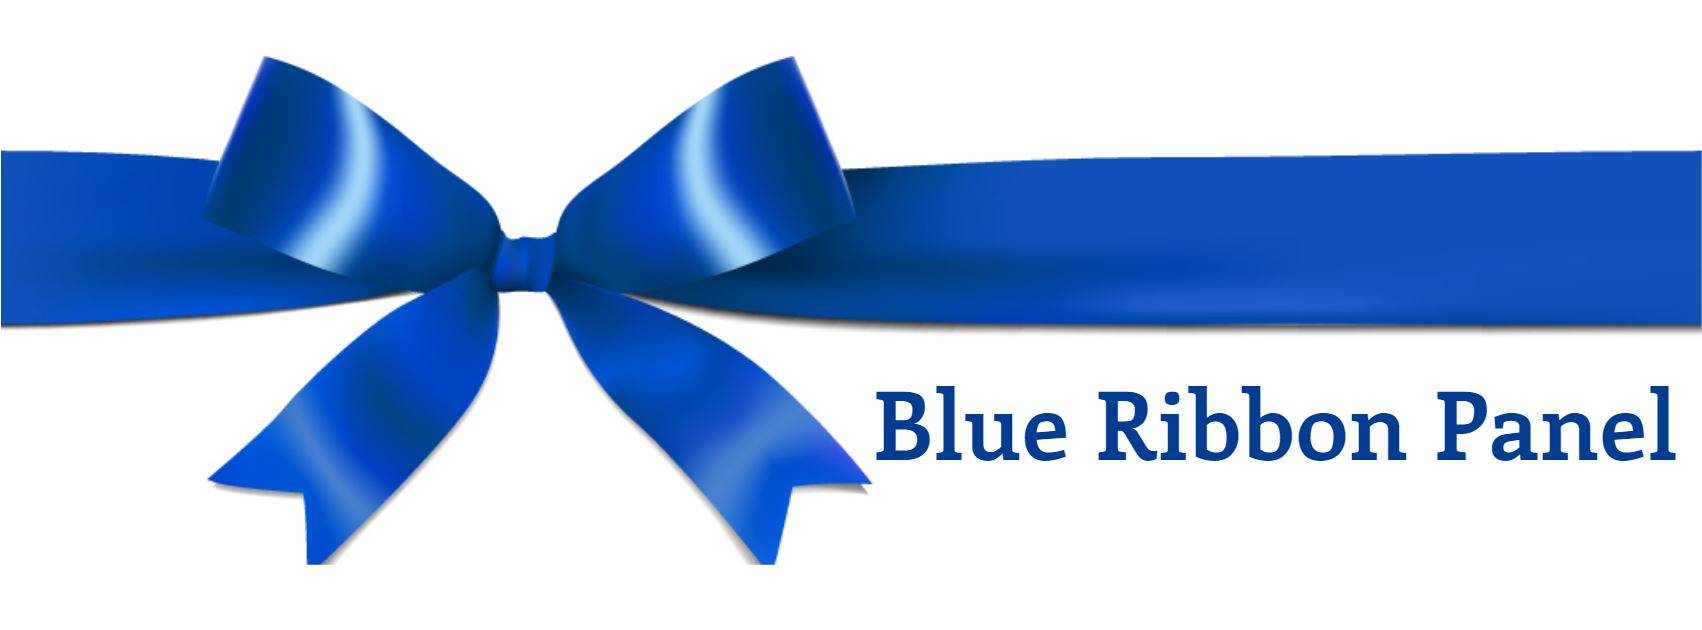 Blue Ribbon Panel graphic of a blue ribbon